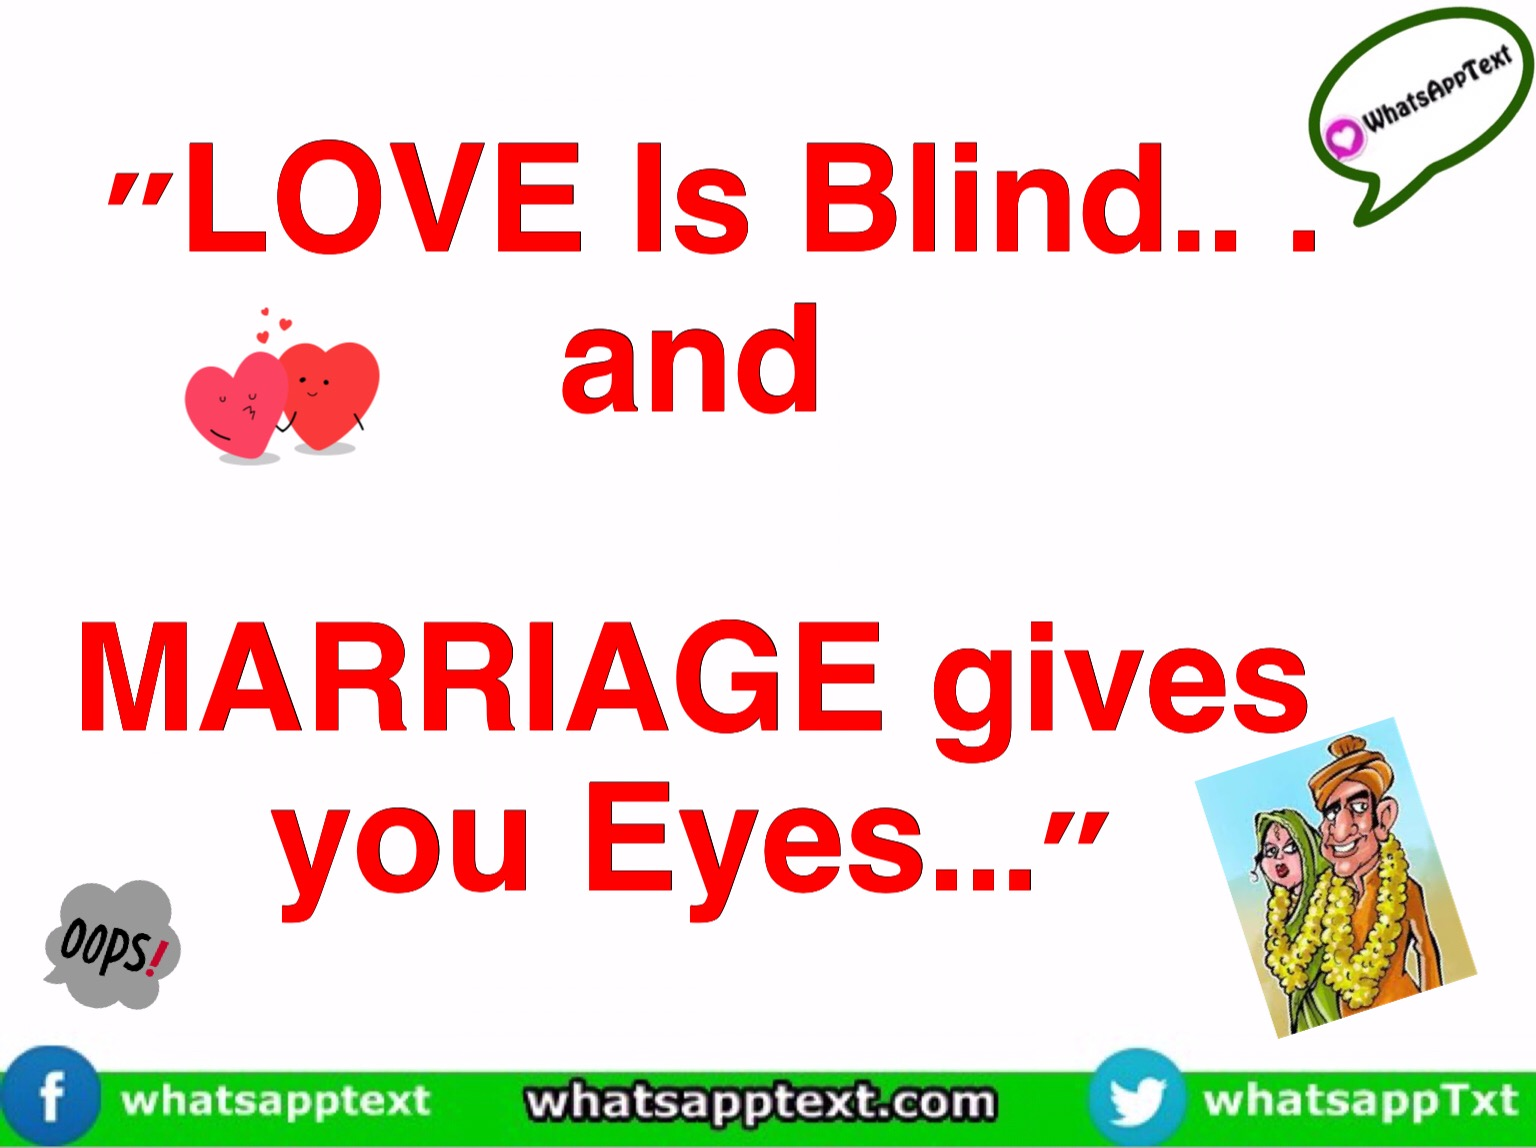 Whatsapp funny Fantastic Quote on Love Marriage - WhatsApp Text